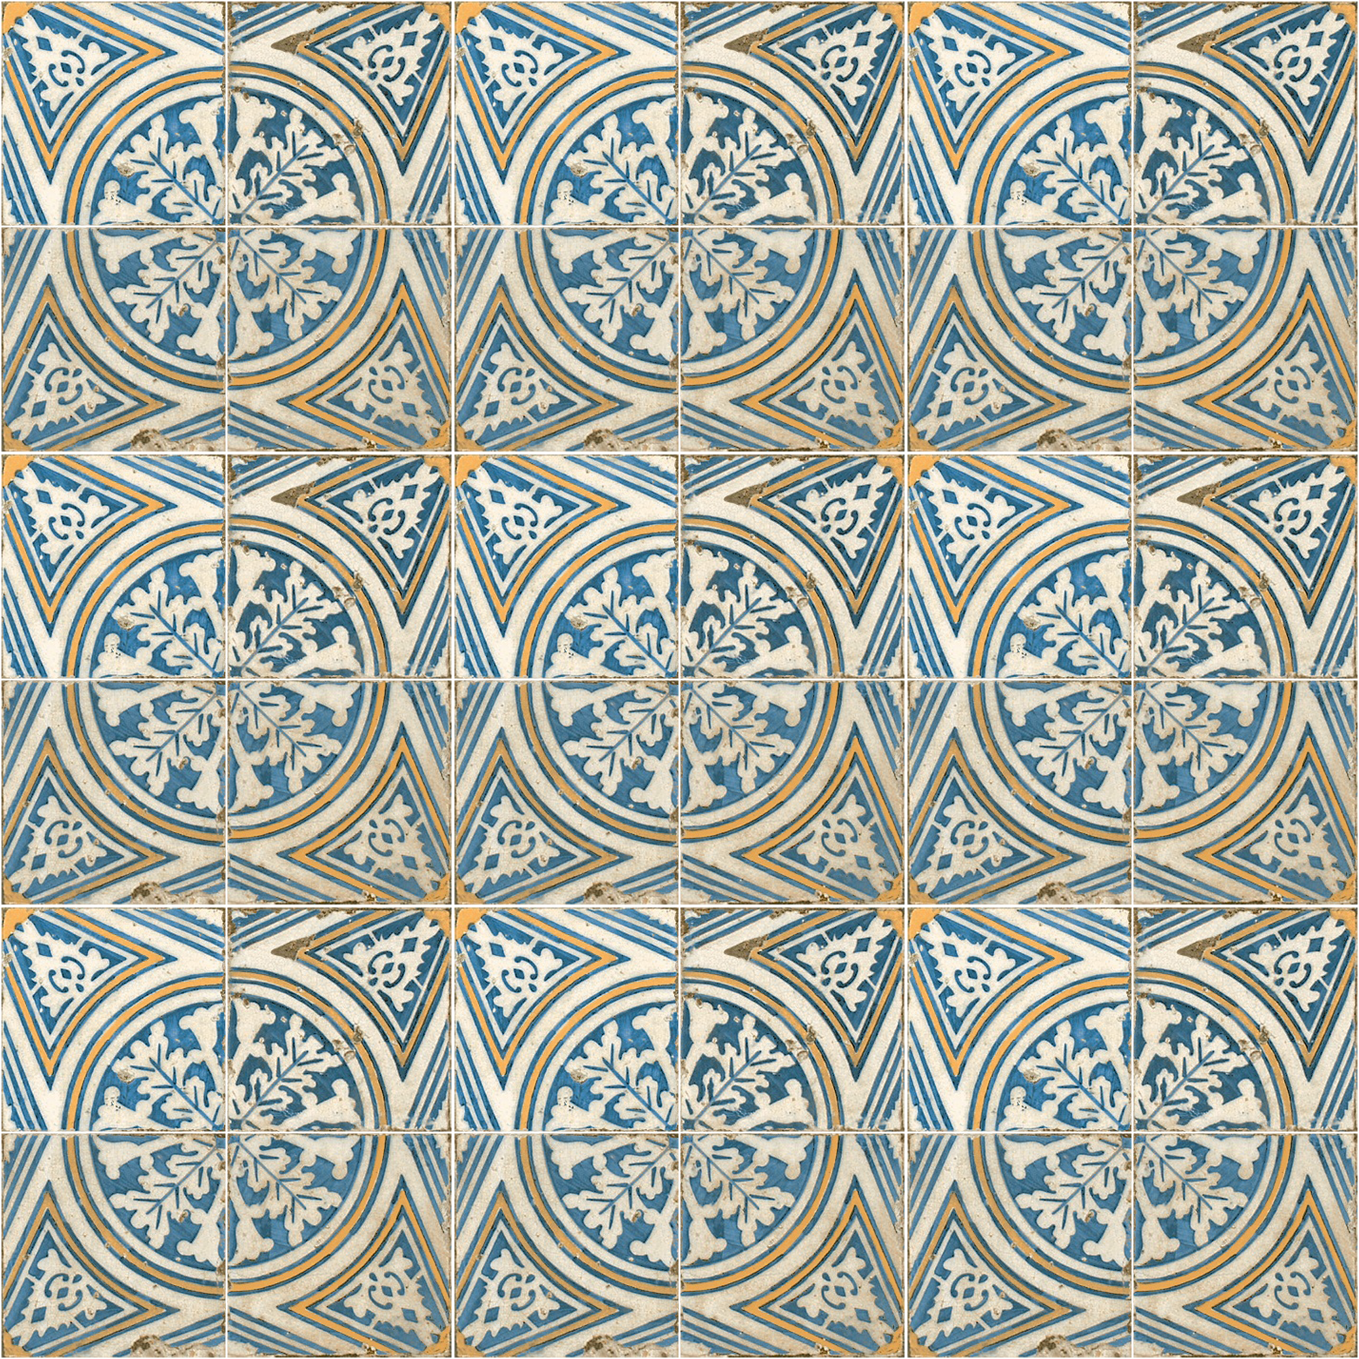 Topps Tiles | tiffany | Pinterest | Topps tiles, Canterbury and ...